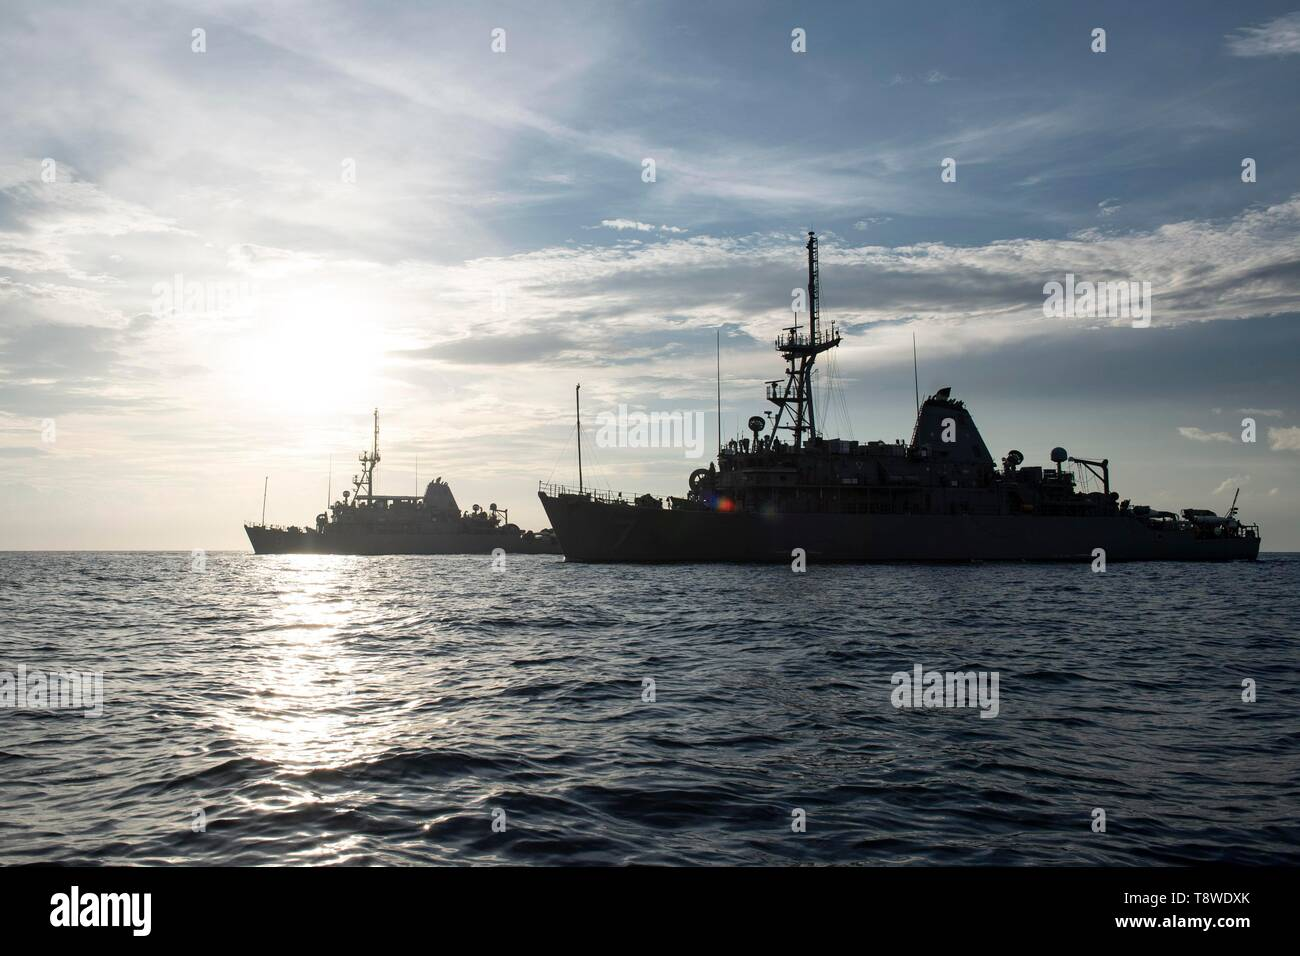 190508-N-SB587-1418 SOUTH CHINA SEA (May 8, 2019) The Avenger-class mine countermeasures ship USS Pioneer (MCM 9) and her sister ship USS Patriot (MCM 7) underway. Both Pioneer and Patriot, part of Mine Countermeasures Squadron 7, are operating in the U.S. 7th Fleet area of operations to enhance interoperability with partners and serve as a ready-response platform for contingency operations. (U.S. Navy photo by Mass Communication Specialist 2nd Class Corbin J. Shea) - Stock Image